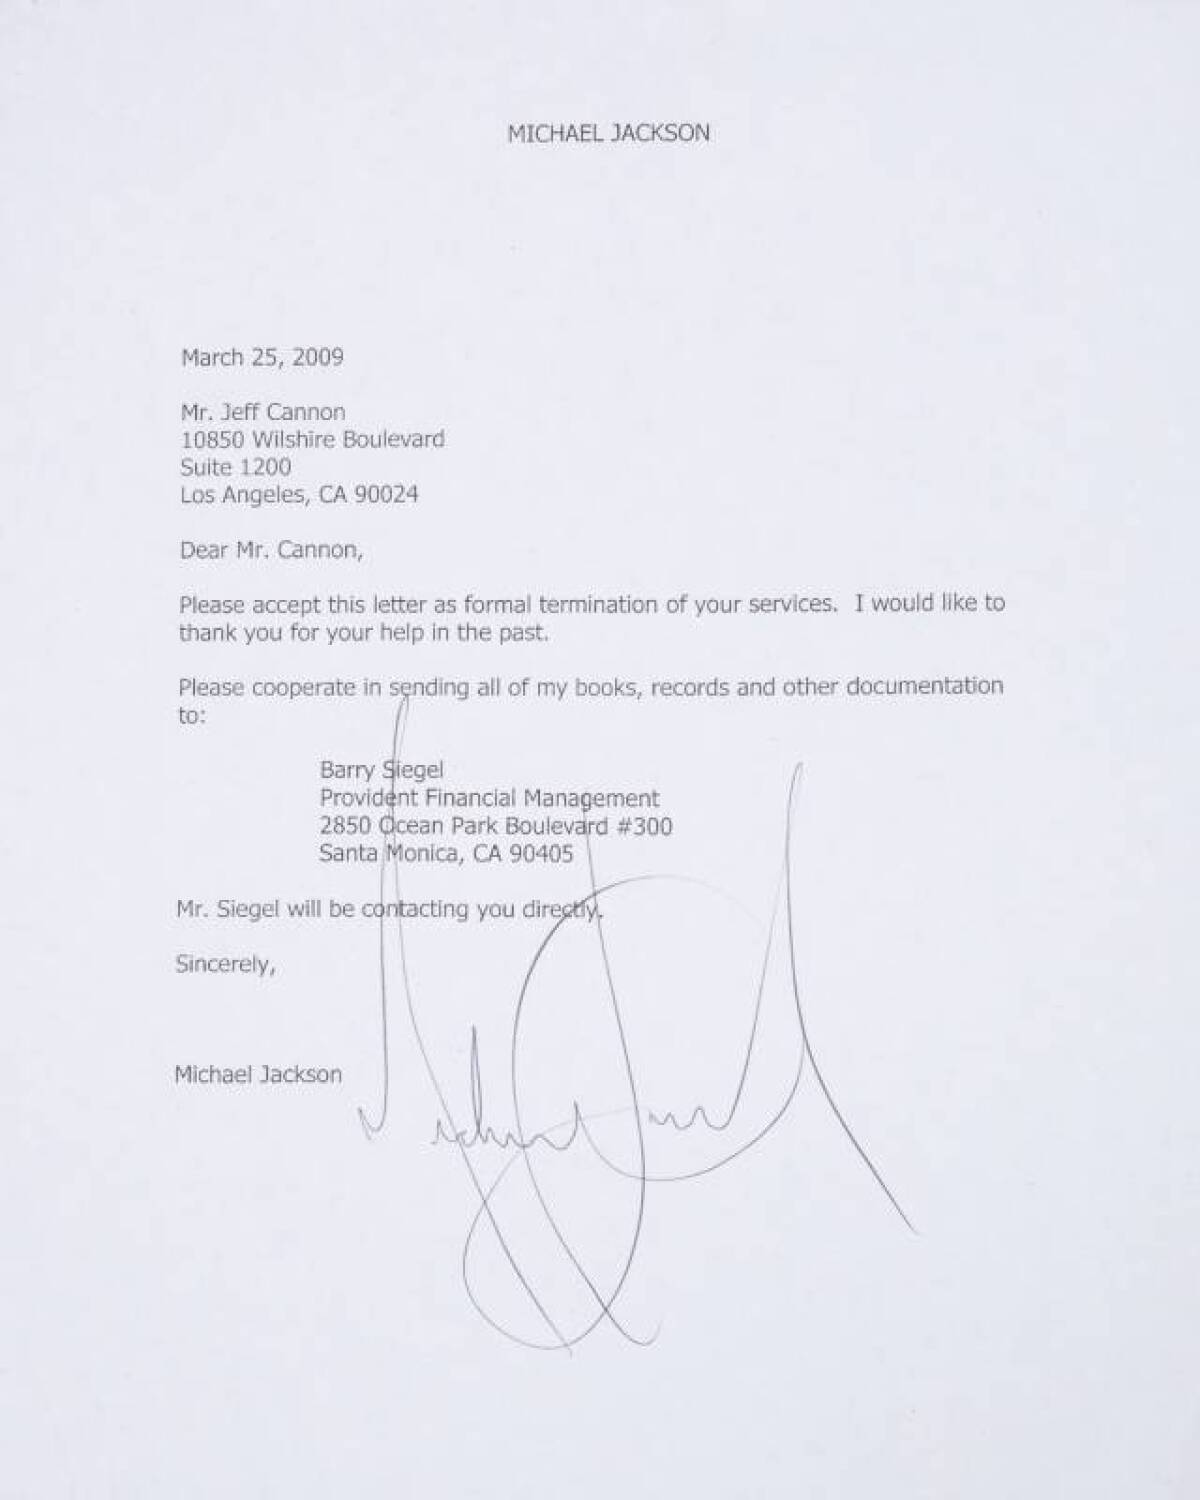 Fitness Connection Cancellation Letter Address from www.julienslive.com